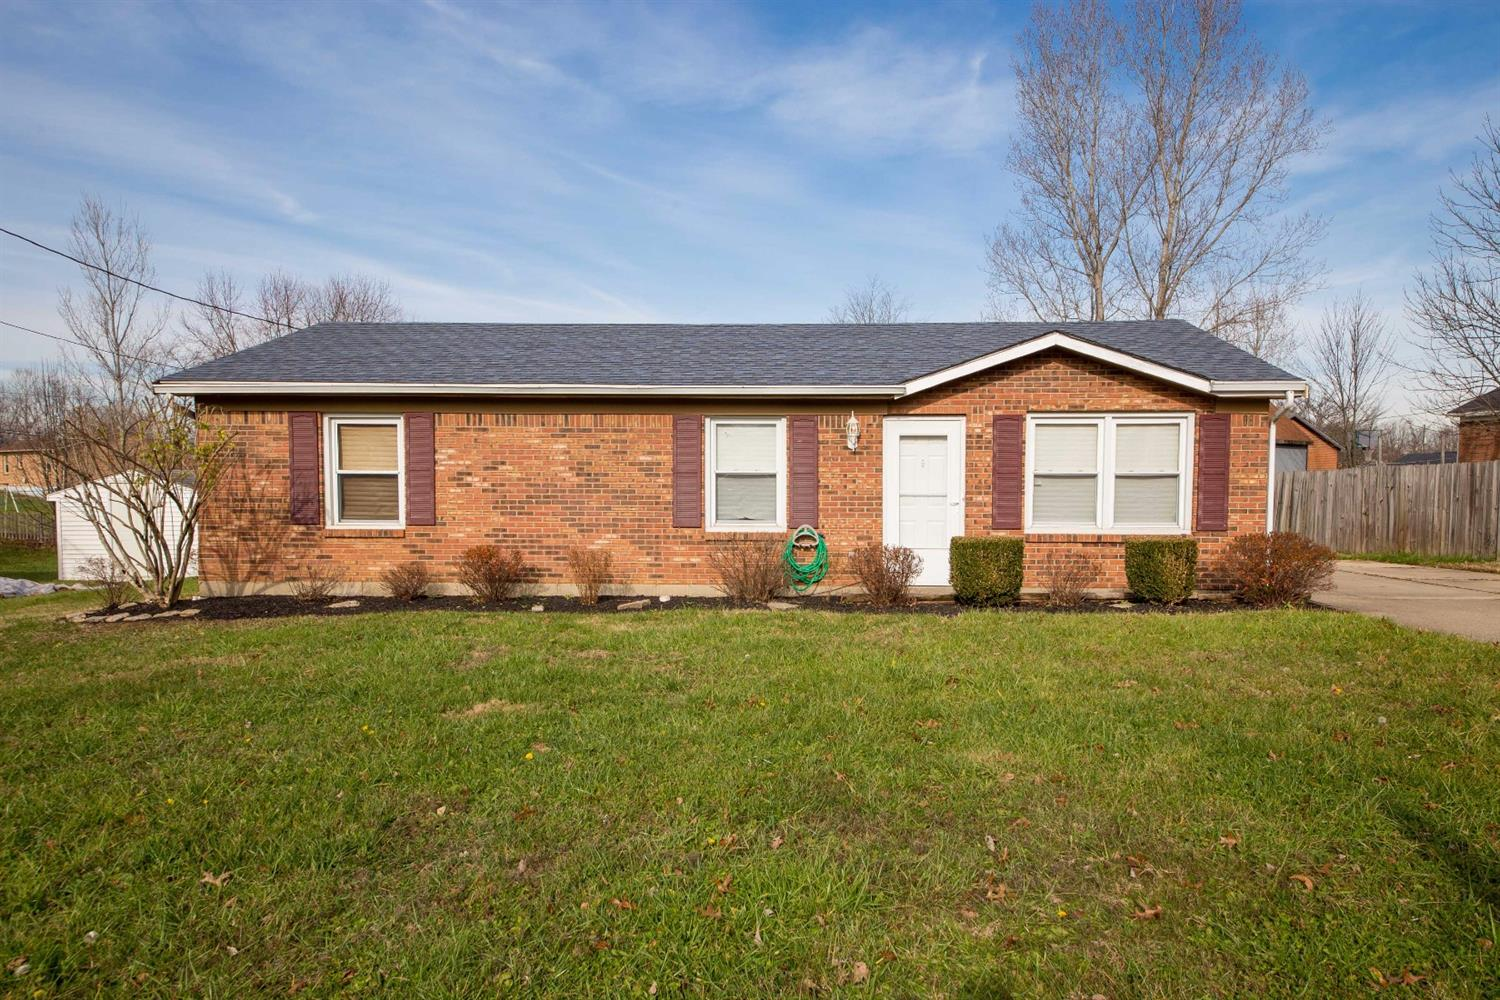 Photo 1 for 2974 Jennifer Ct Burlington, KY 41005